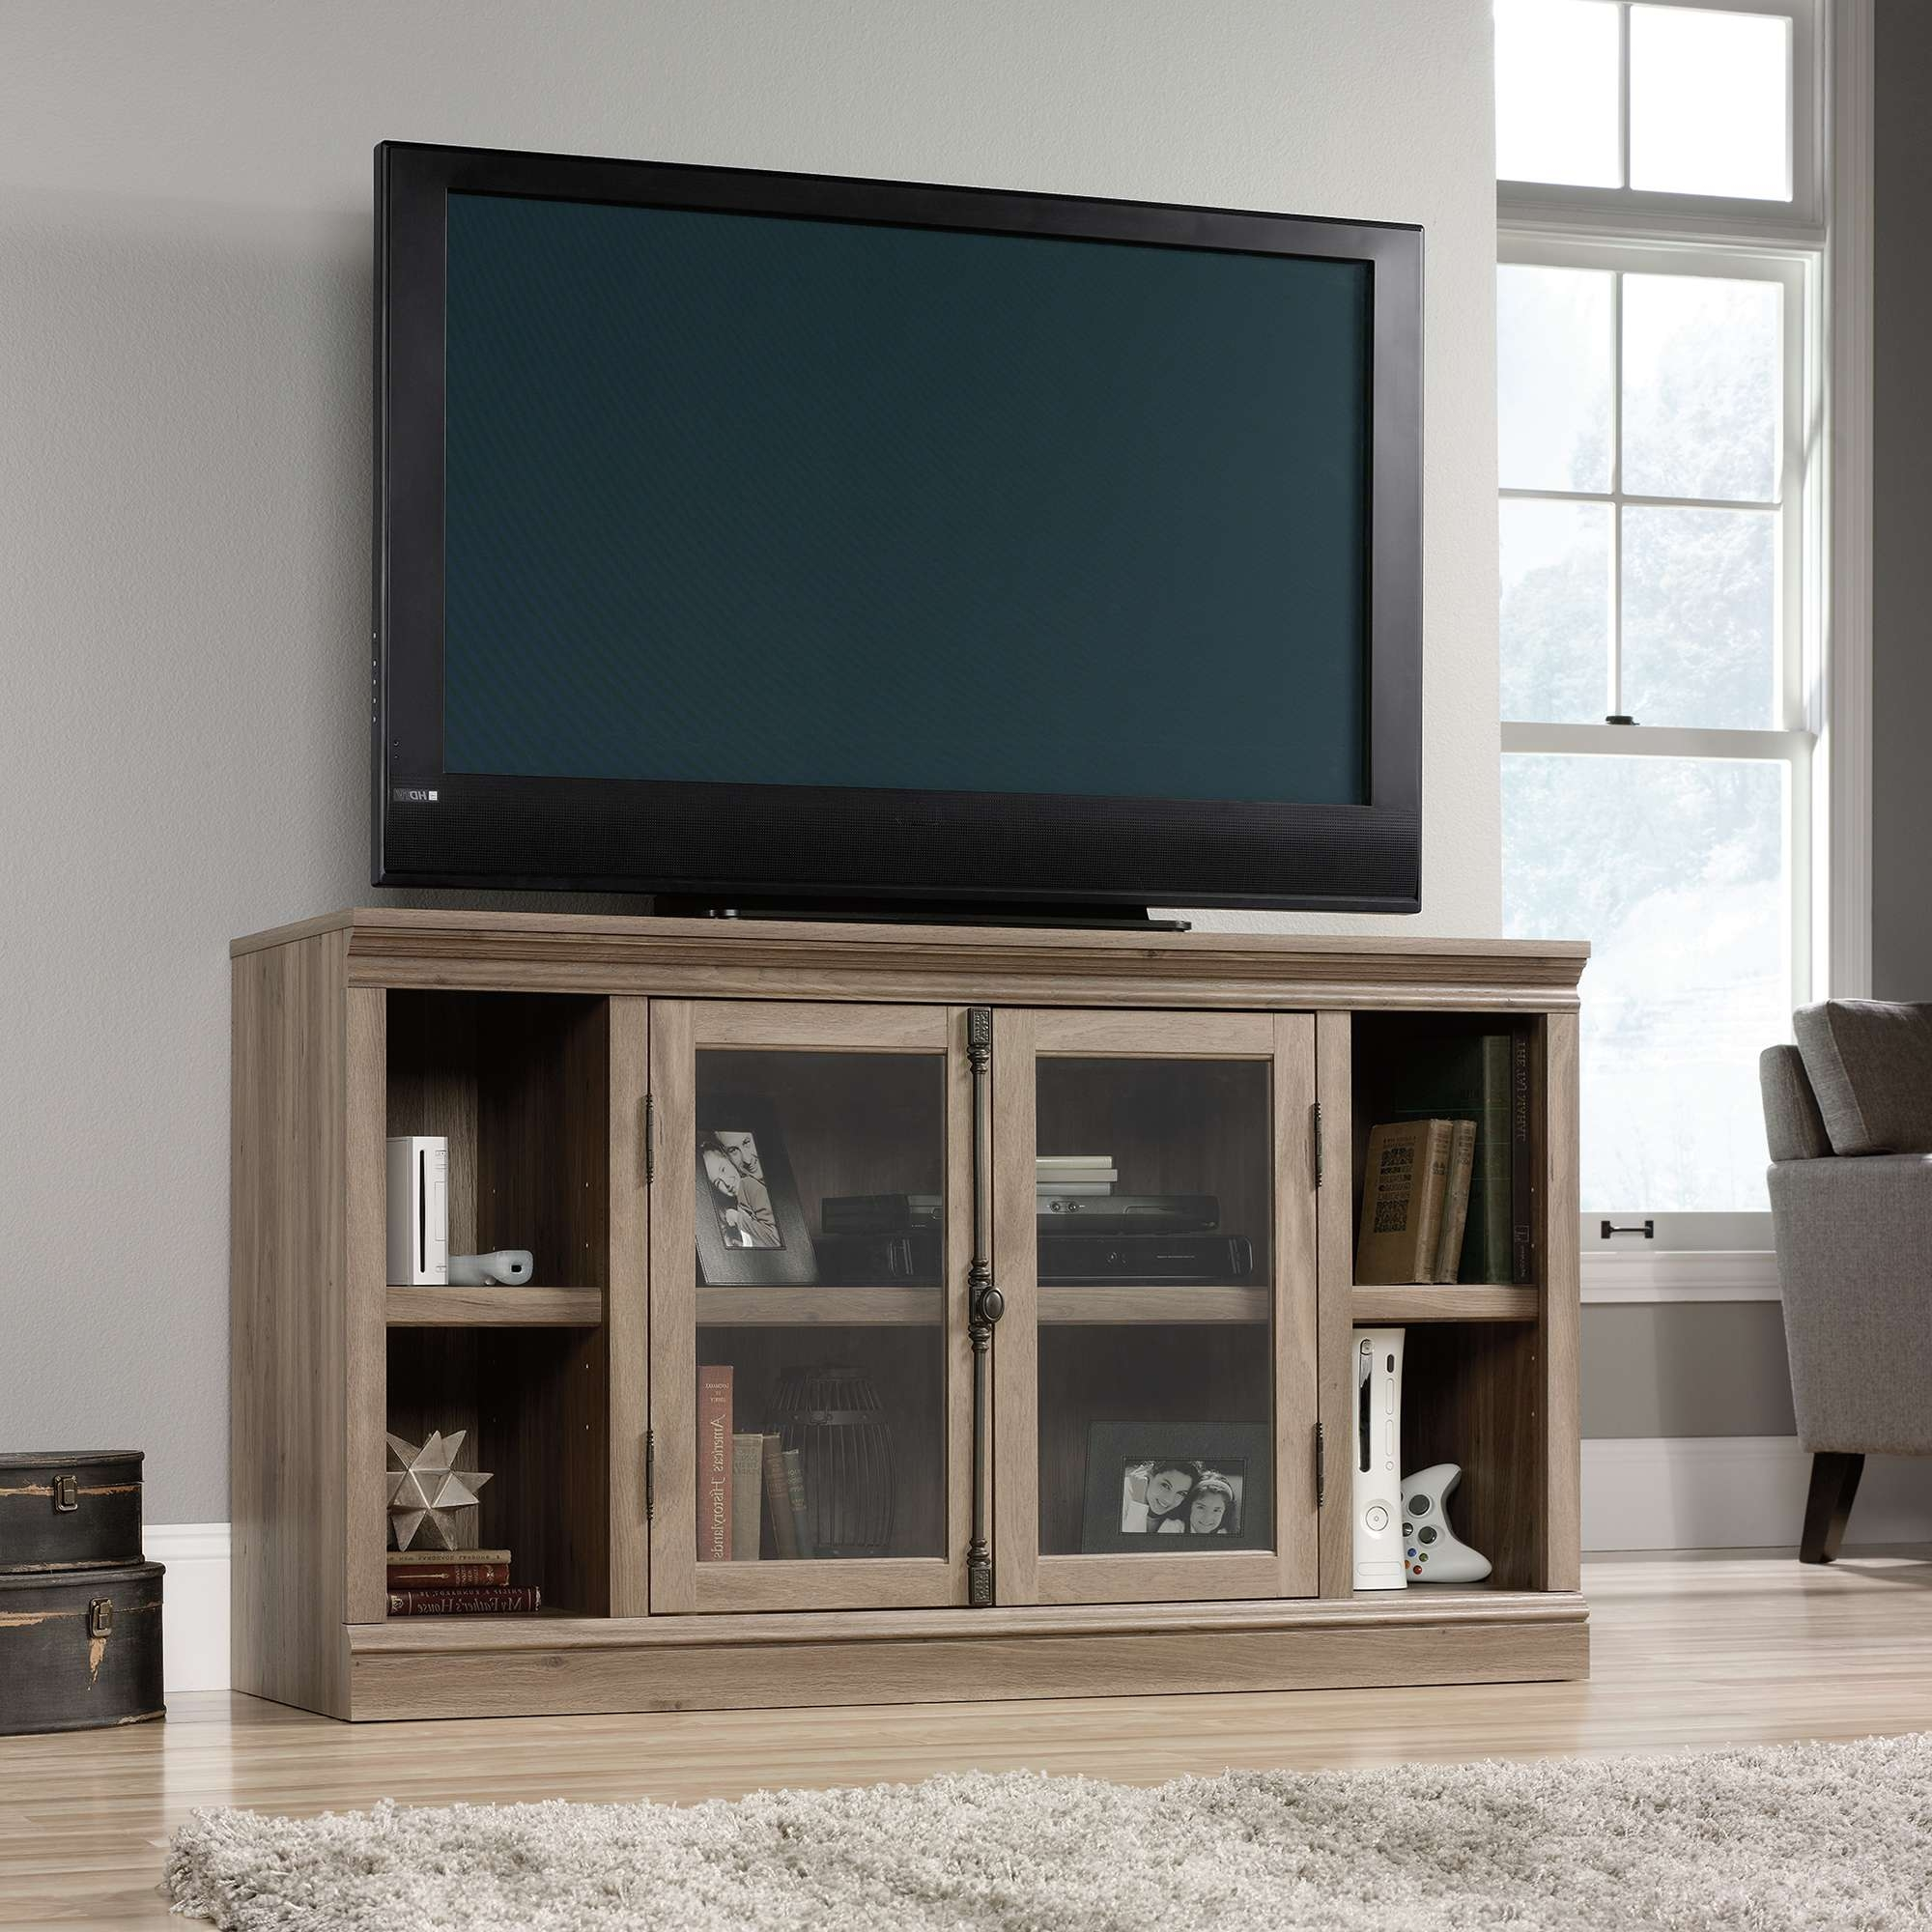 Barrister Lane | Entertainment Credenza | 416488 | Sauder With Regard To Lane Tv Stands (View 3 of 15)